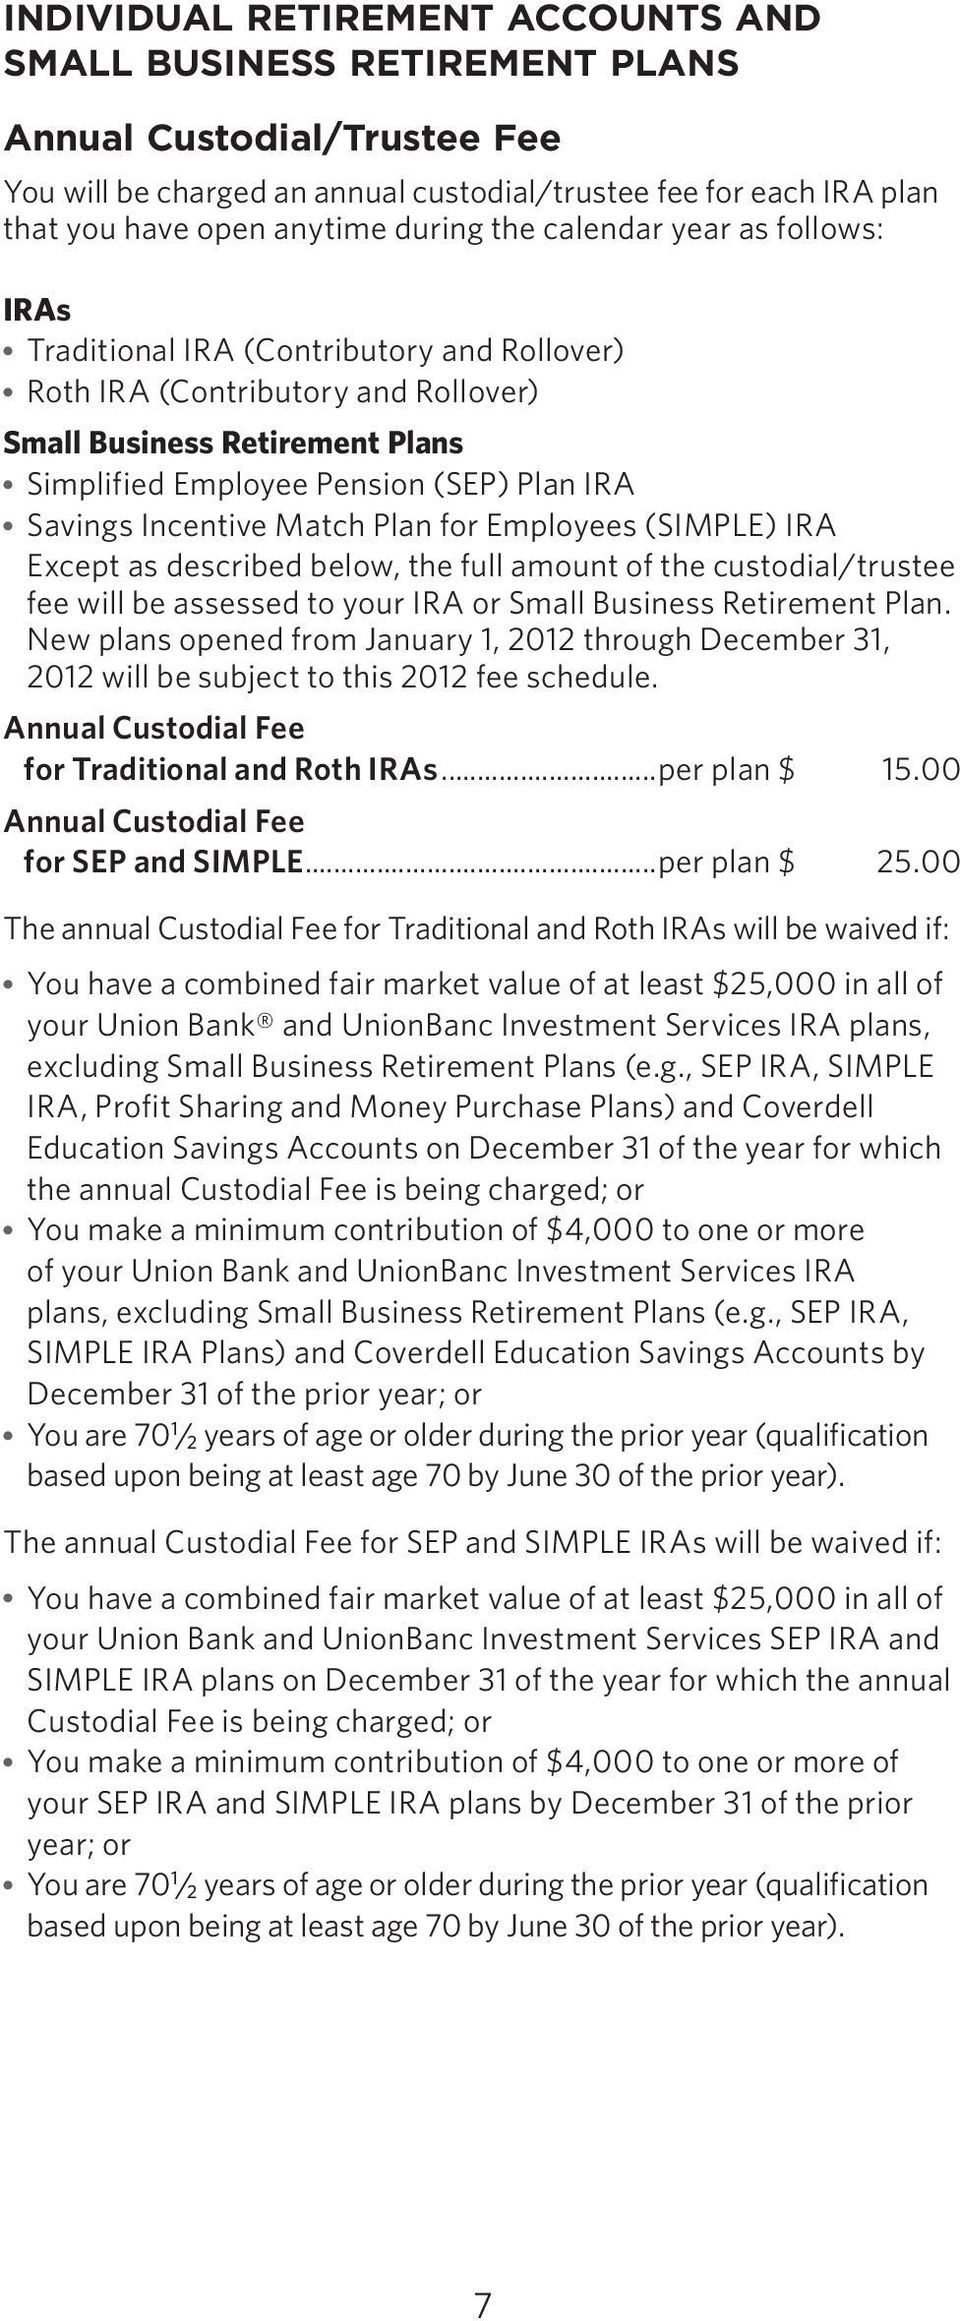 Incentive Match Plan for Employees (SIMPLE) IRA Except as described below, the full amount of the custodial/trustee fee will be assessed to your IRA or Small Business Retirement Plan.